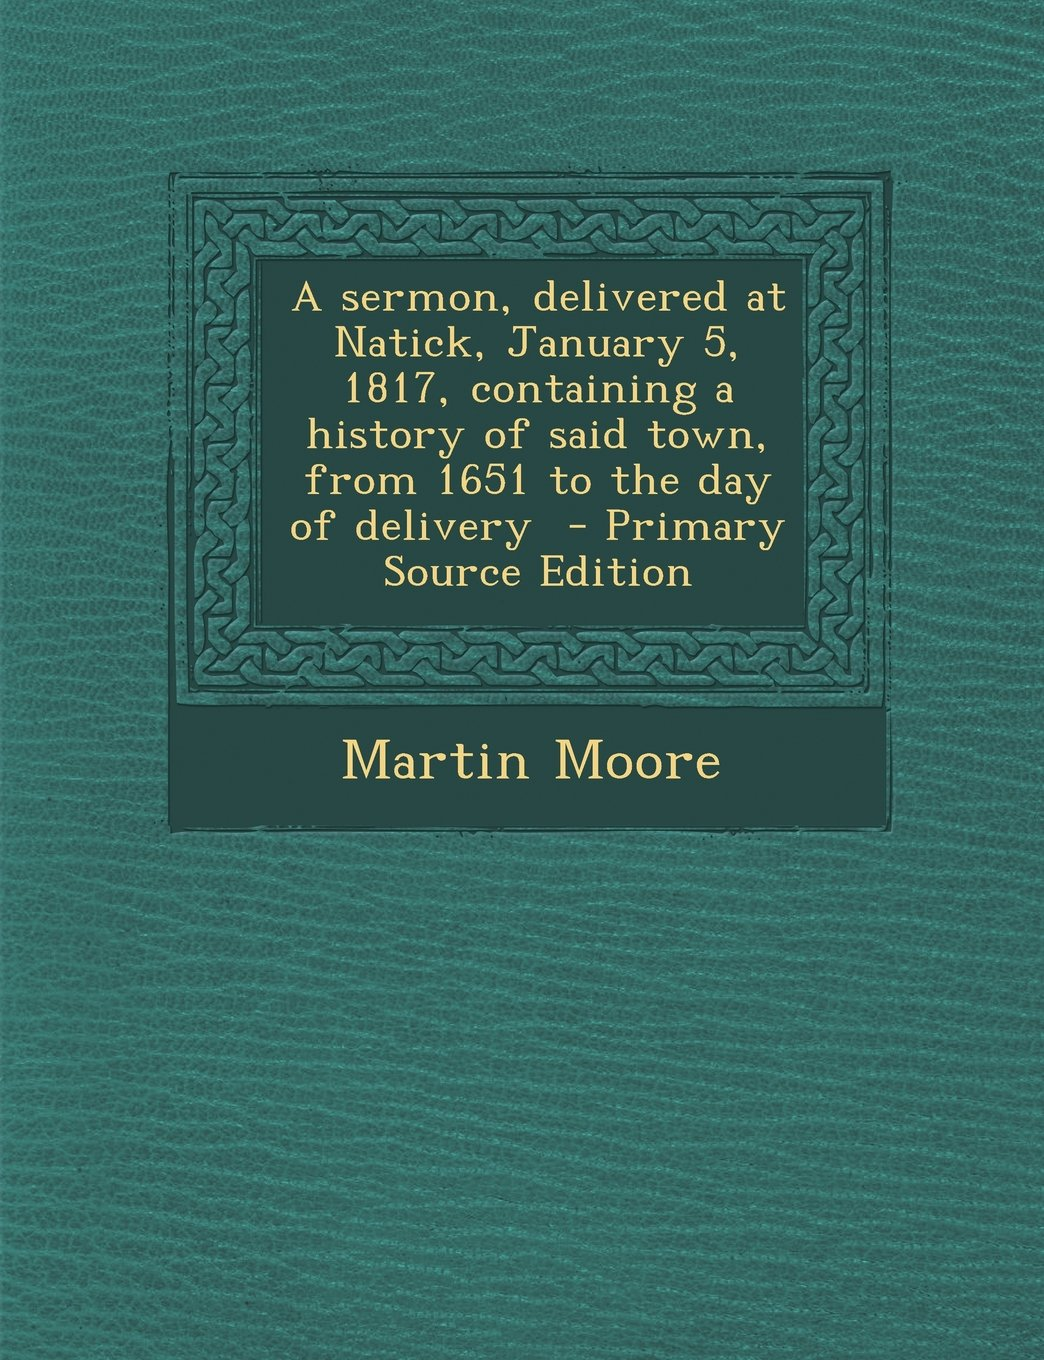 Download A sermon, delivered at Natick, January 5, 1817, containing a history of said town, from 1651 to the day of delivery  - Primary Source Edition ebook